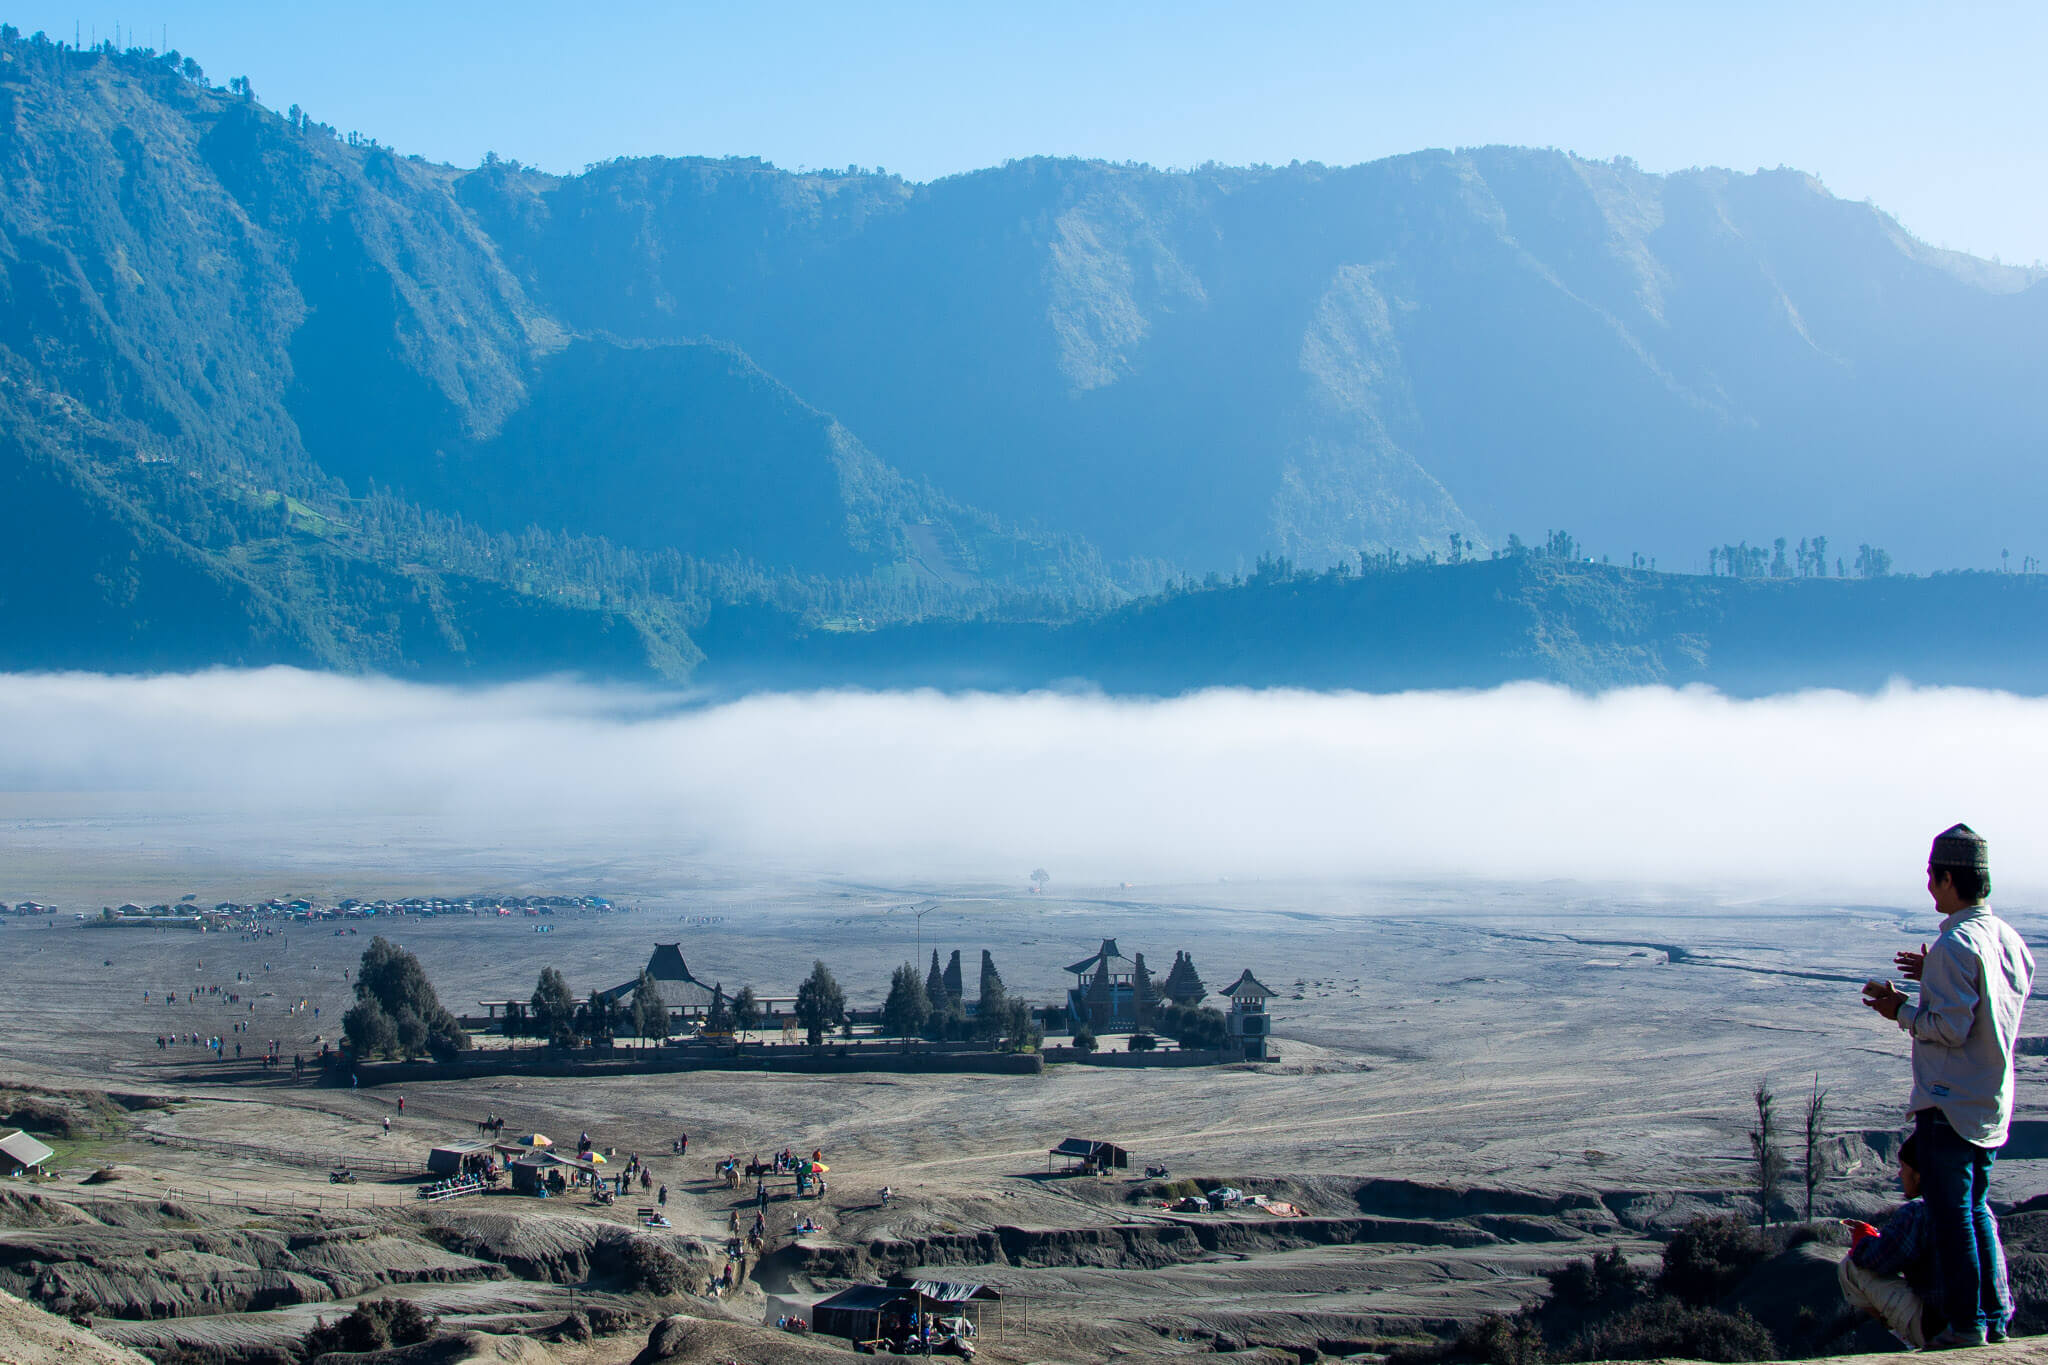 The Hindu Temple of Mount Bromo